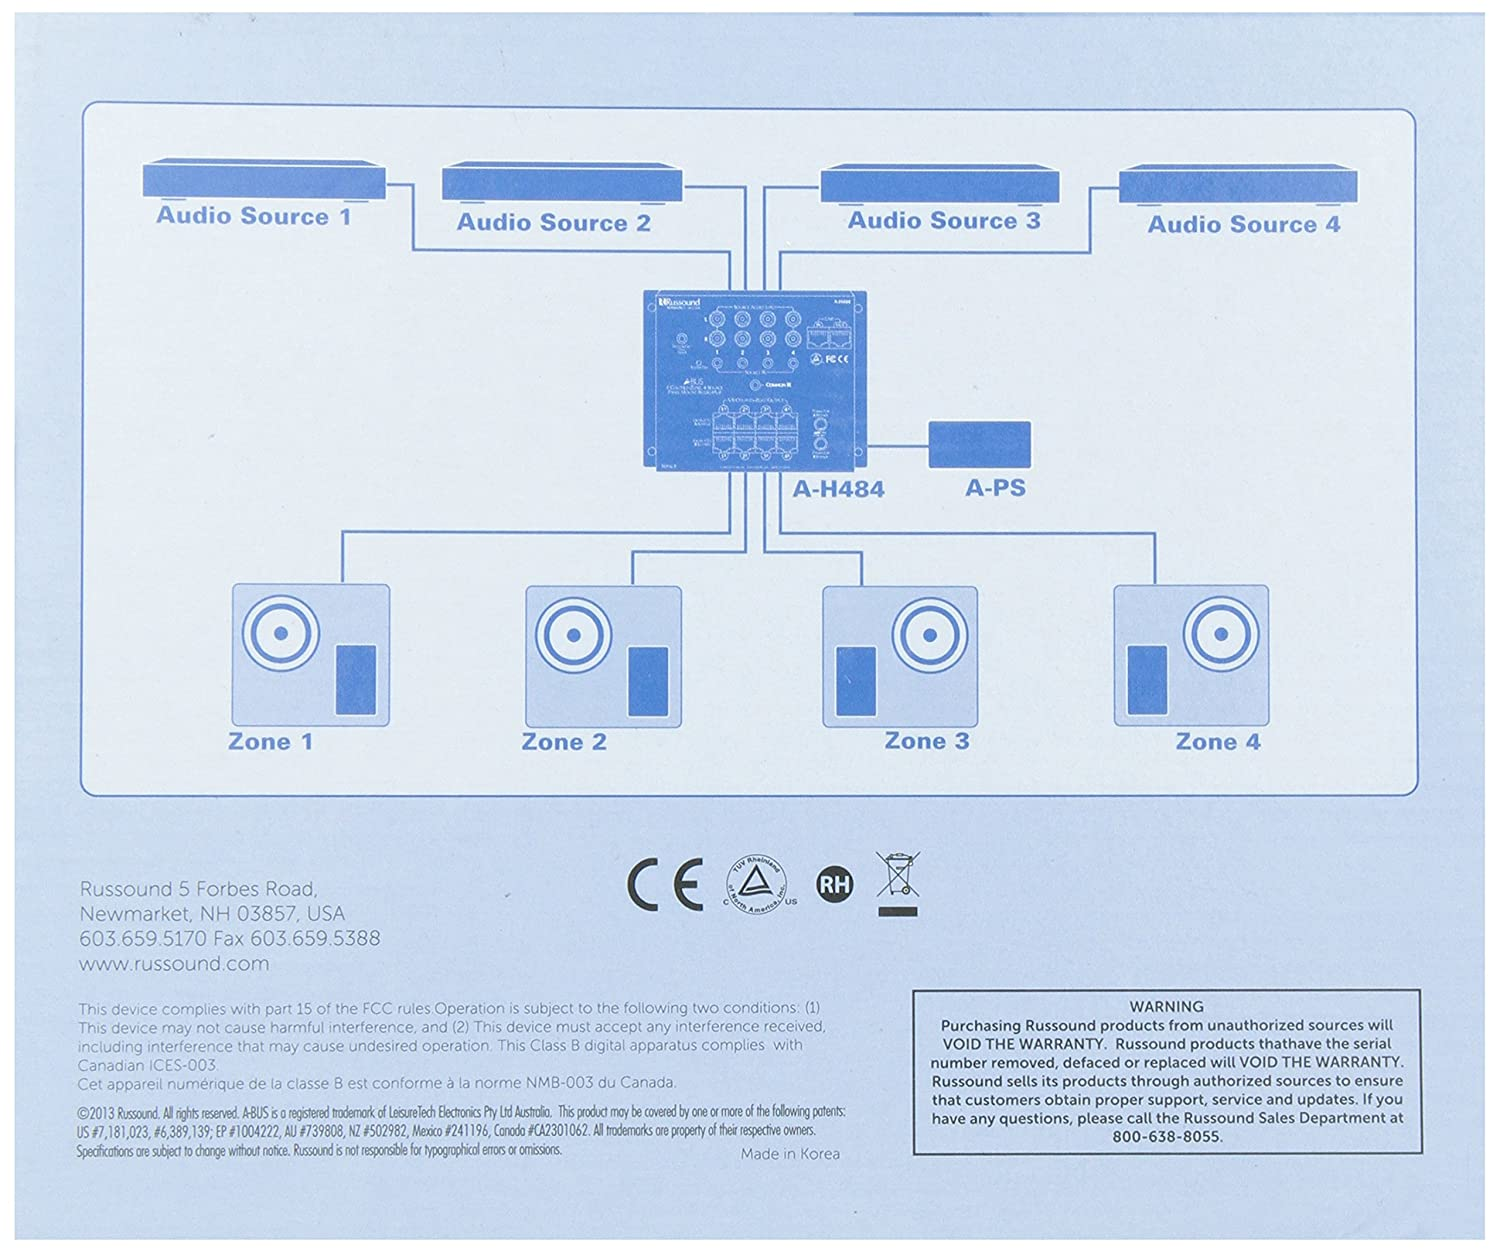 Amazon.com: Russound A-H484 A-BUS 4 Zone 8 Room 4 Source Audio Distribution  Hub: Home Audio & Theater